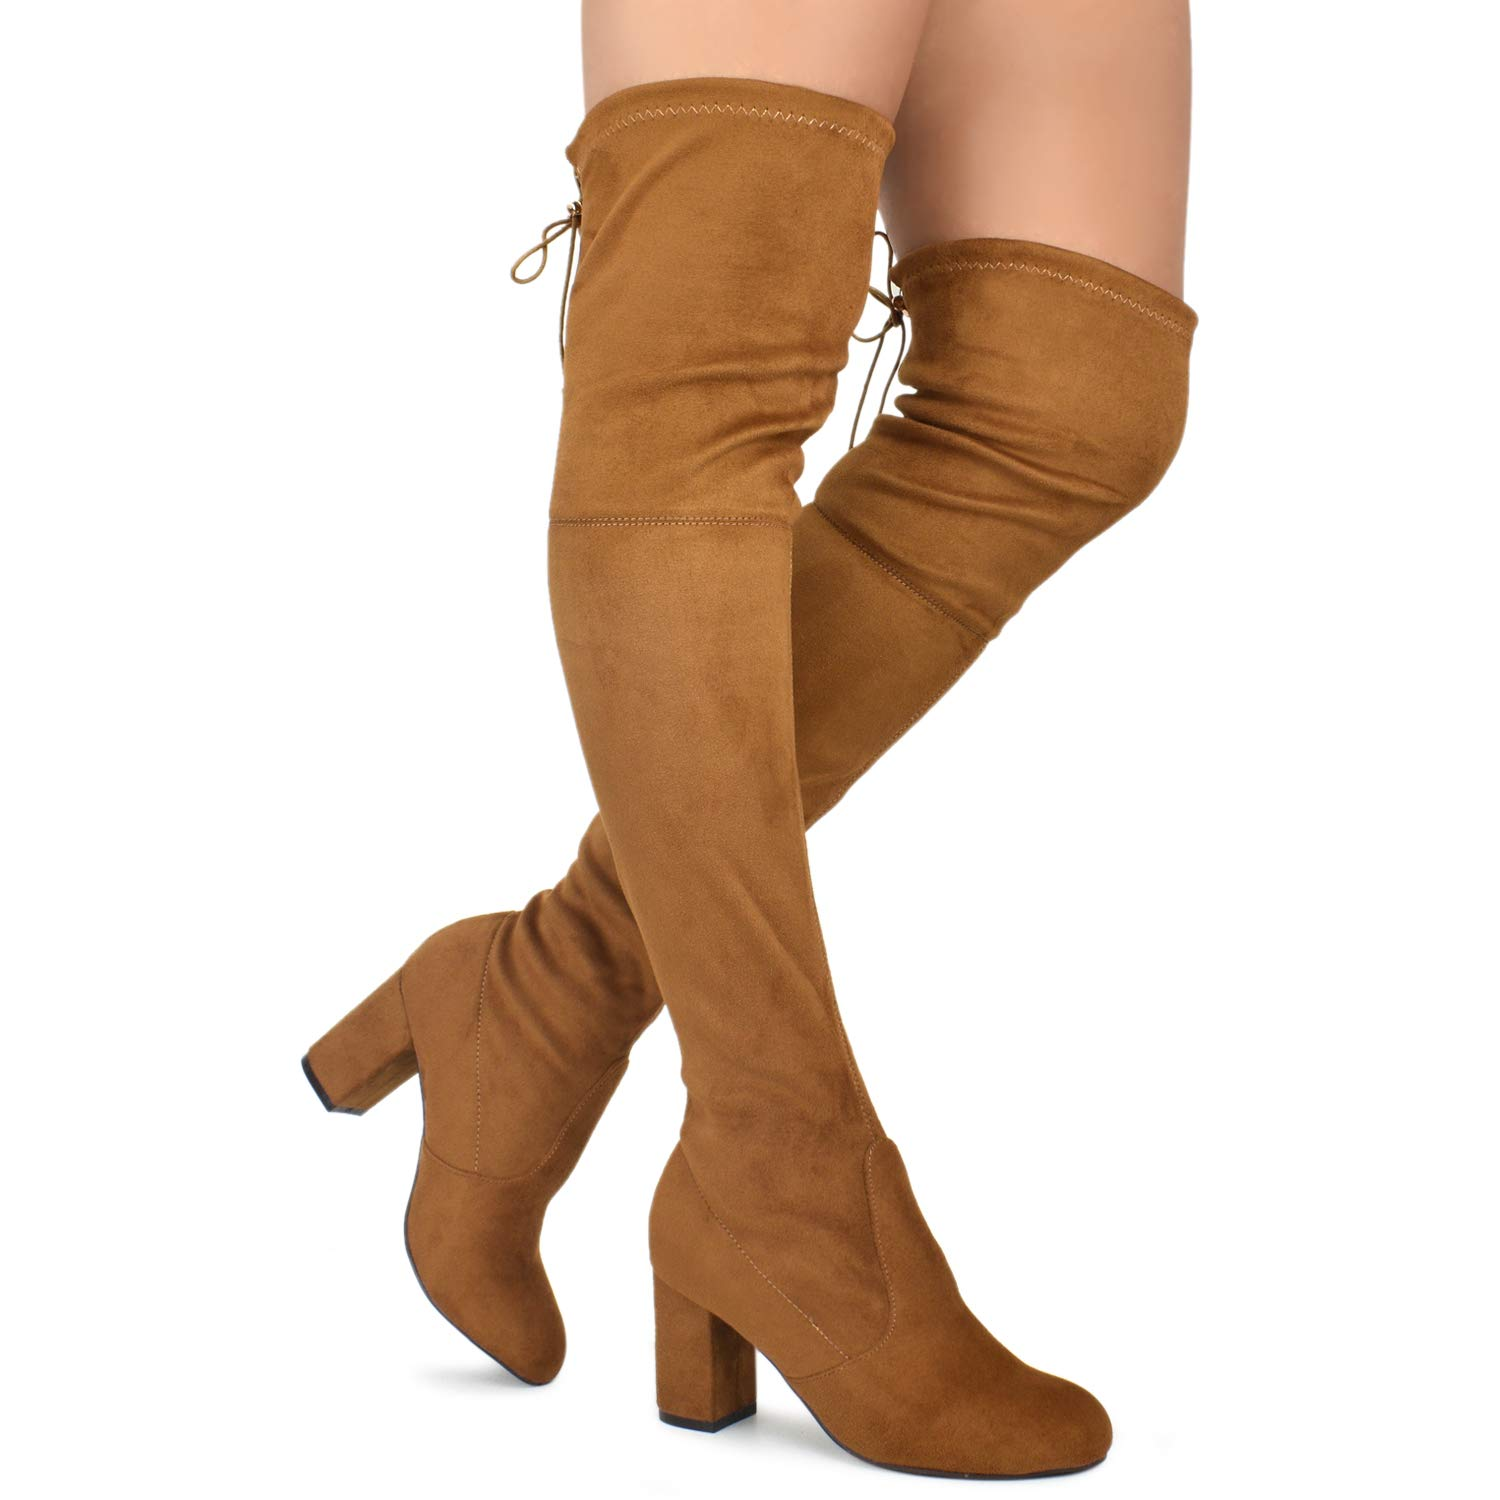 Premier Standard - Women Fashion Comfy Vegan Suede Block Heel Slip On Thigh High Over The Knee Boots